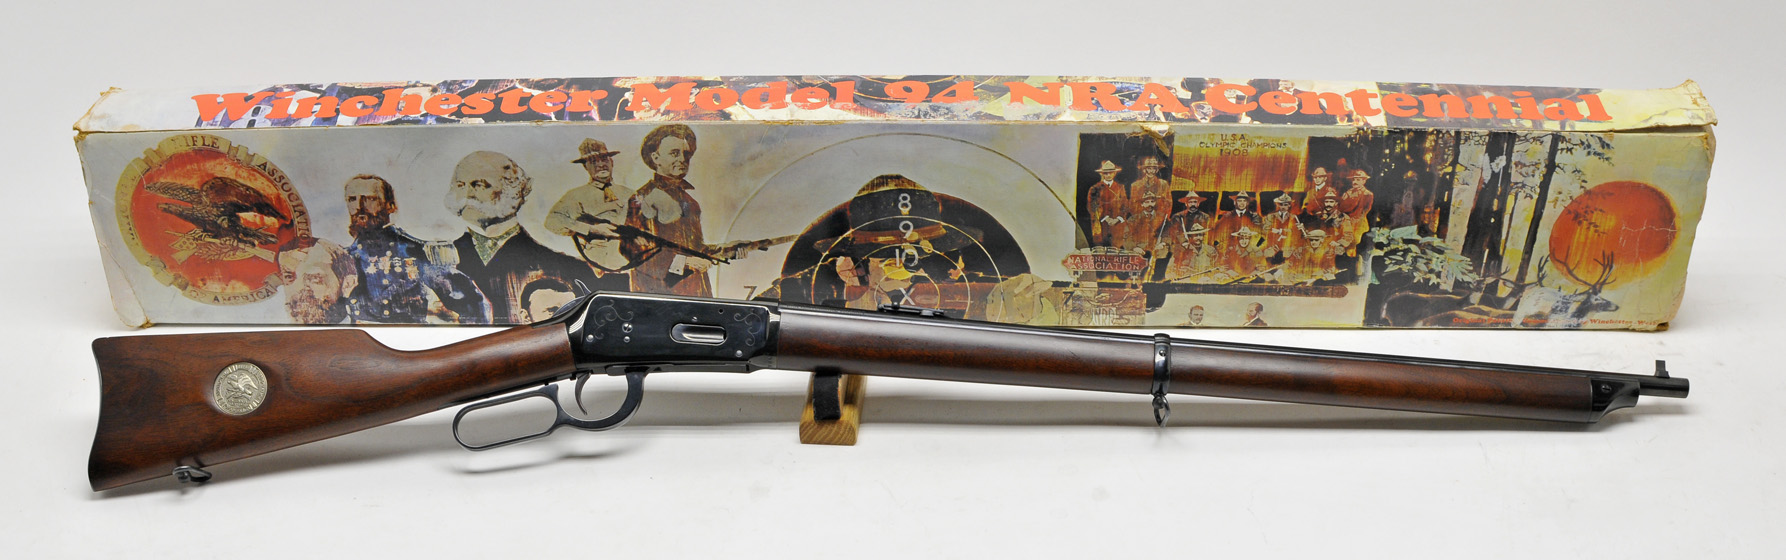 winchester nra commemorative model 1894 30-30